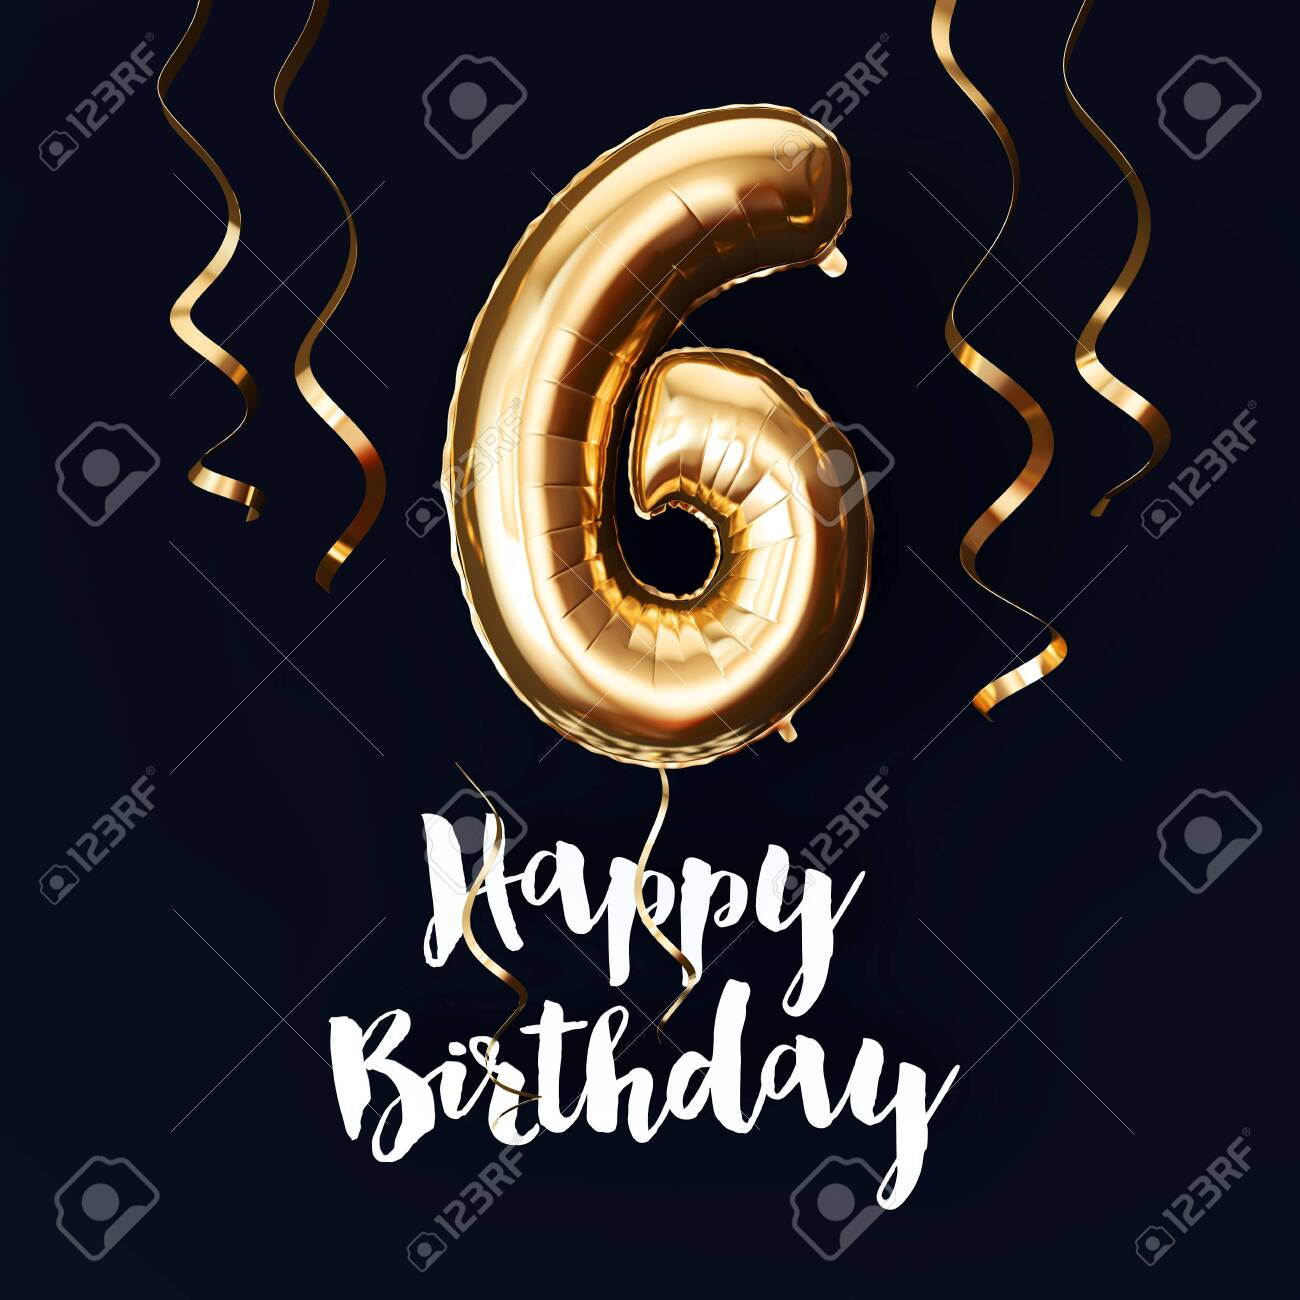 Happy 6th Birthday Gold Foil Balloon Background With Ribbons Stock Photo Picture And Royalty Free Image Image 124364457